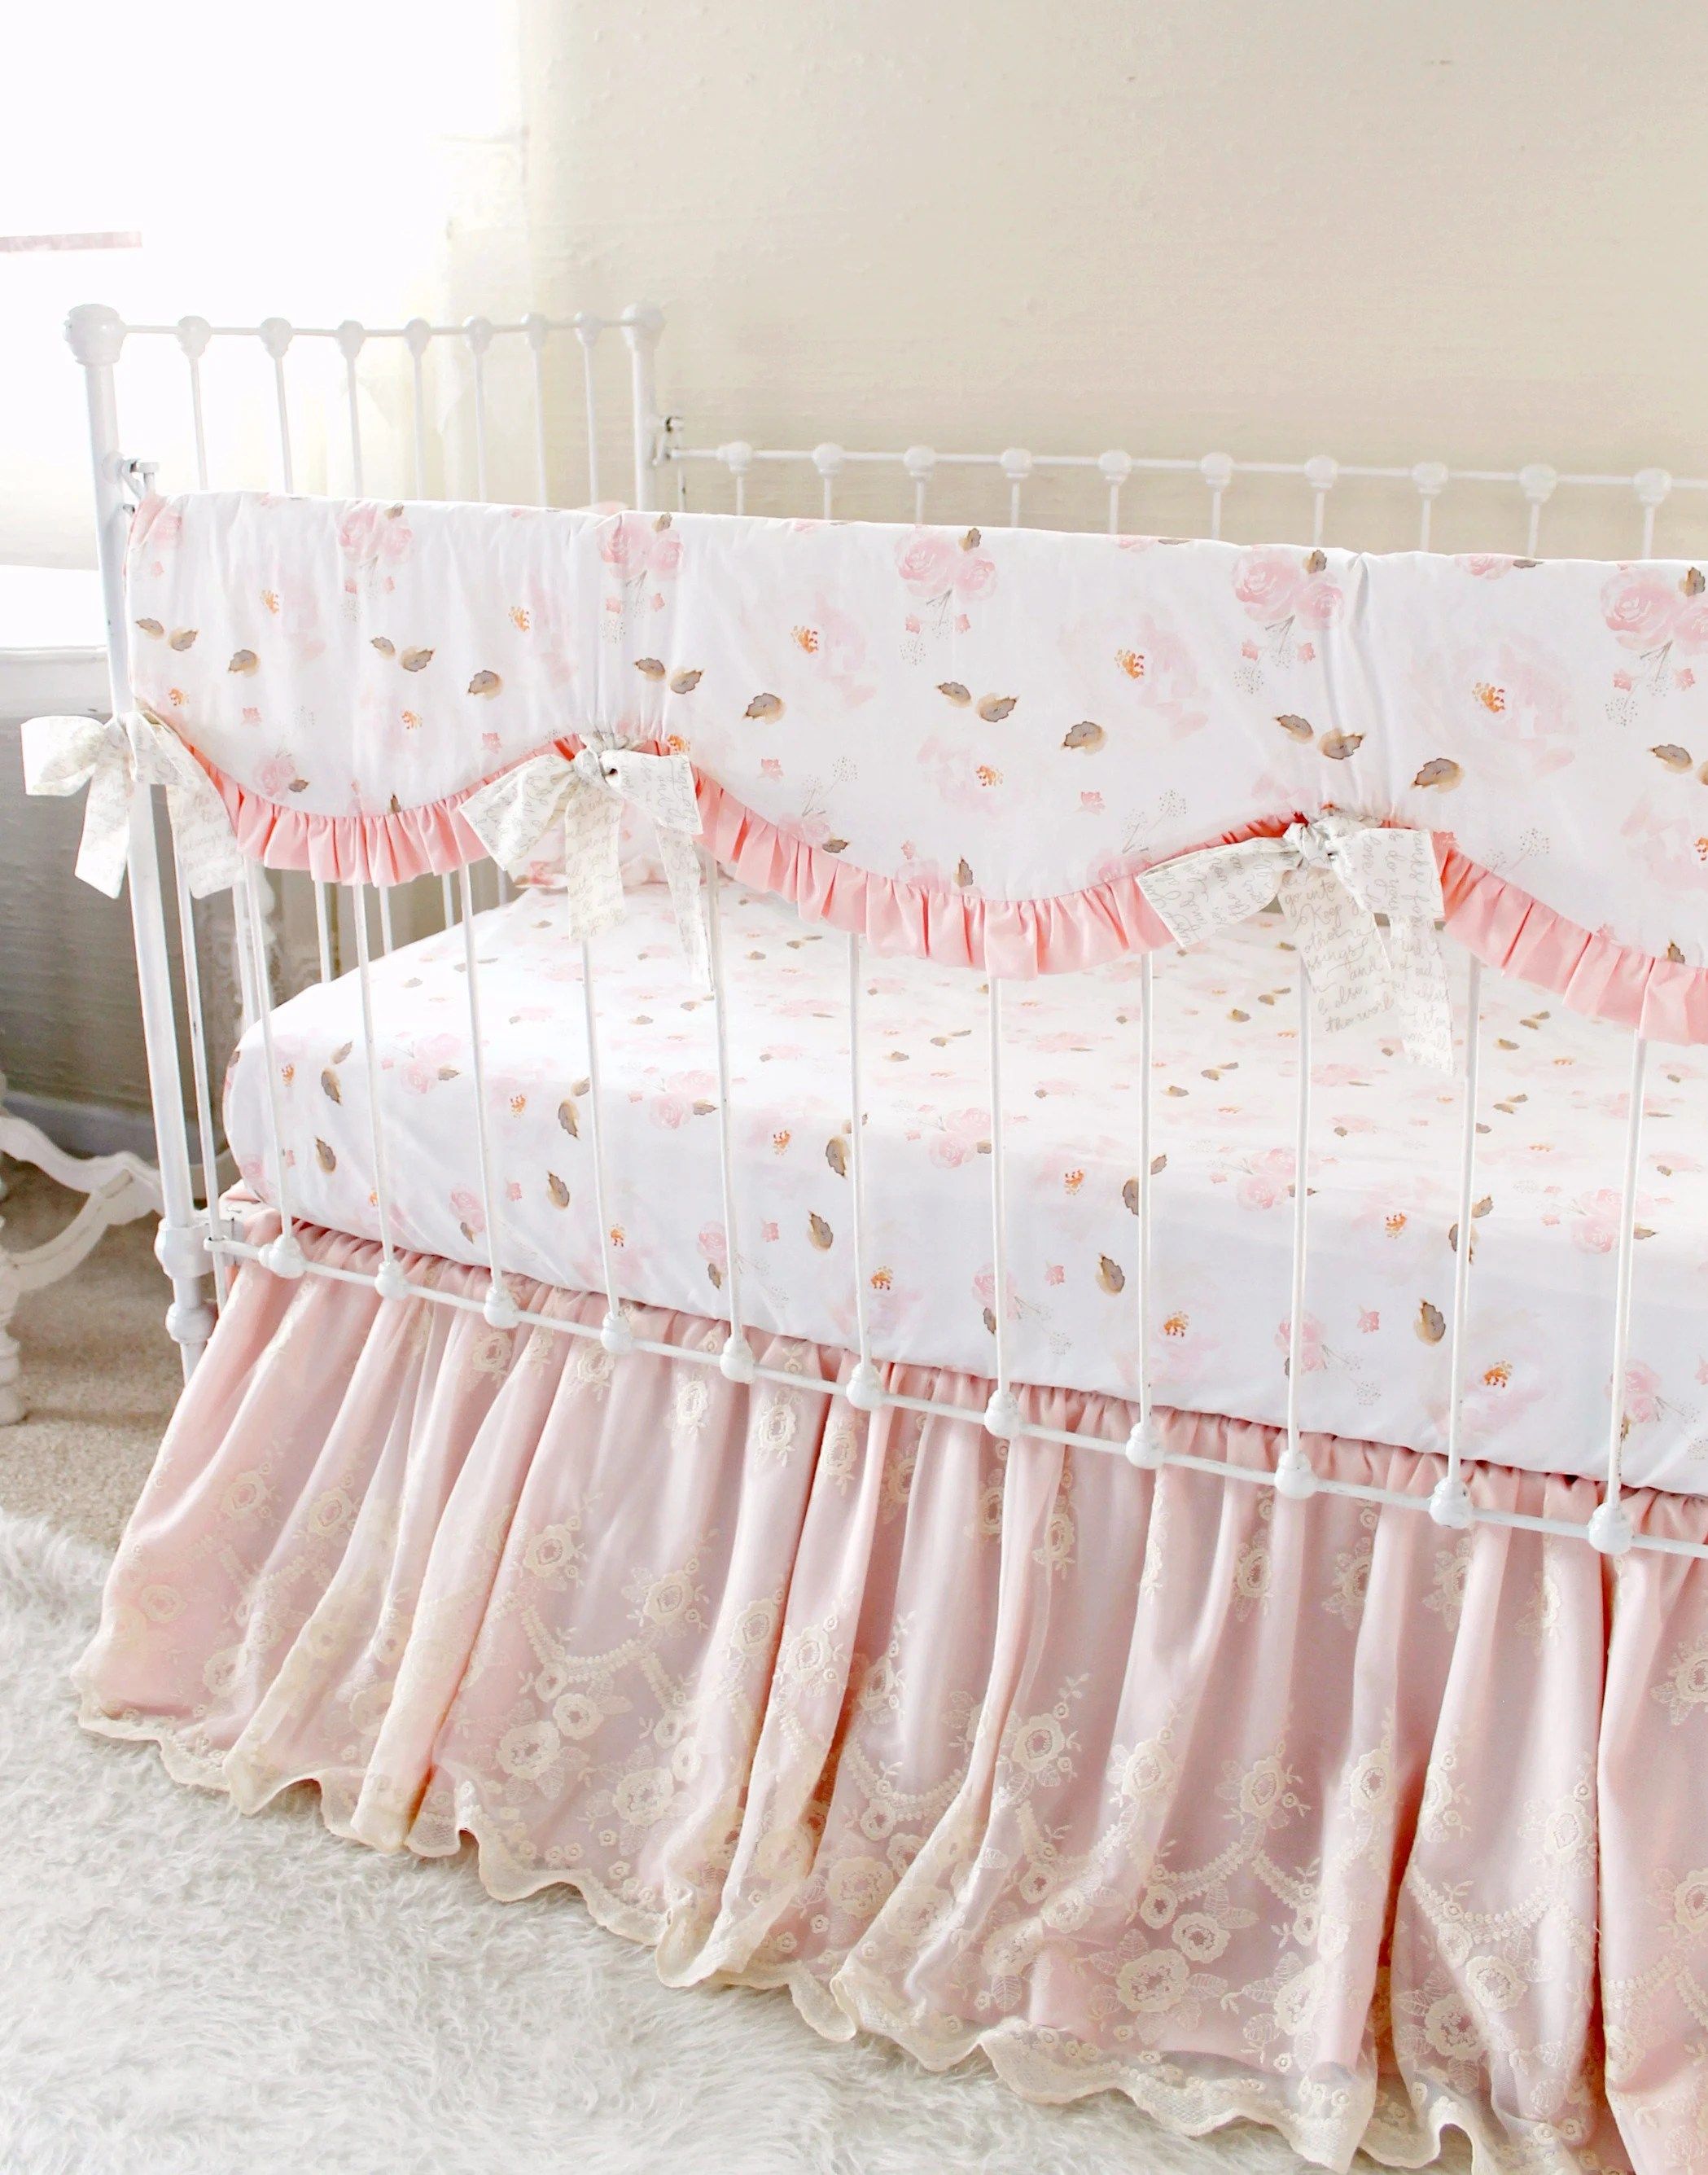 Full Crib Bedding Sets Baby Girl Crib Bedding Set Farmhouse Style Nursery 3pc Crib Set Pink And White Crib Rail Cover Floral Crib Sheet Lace Crib Skirt